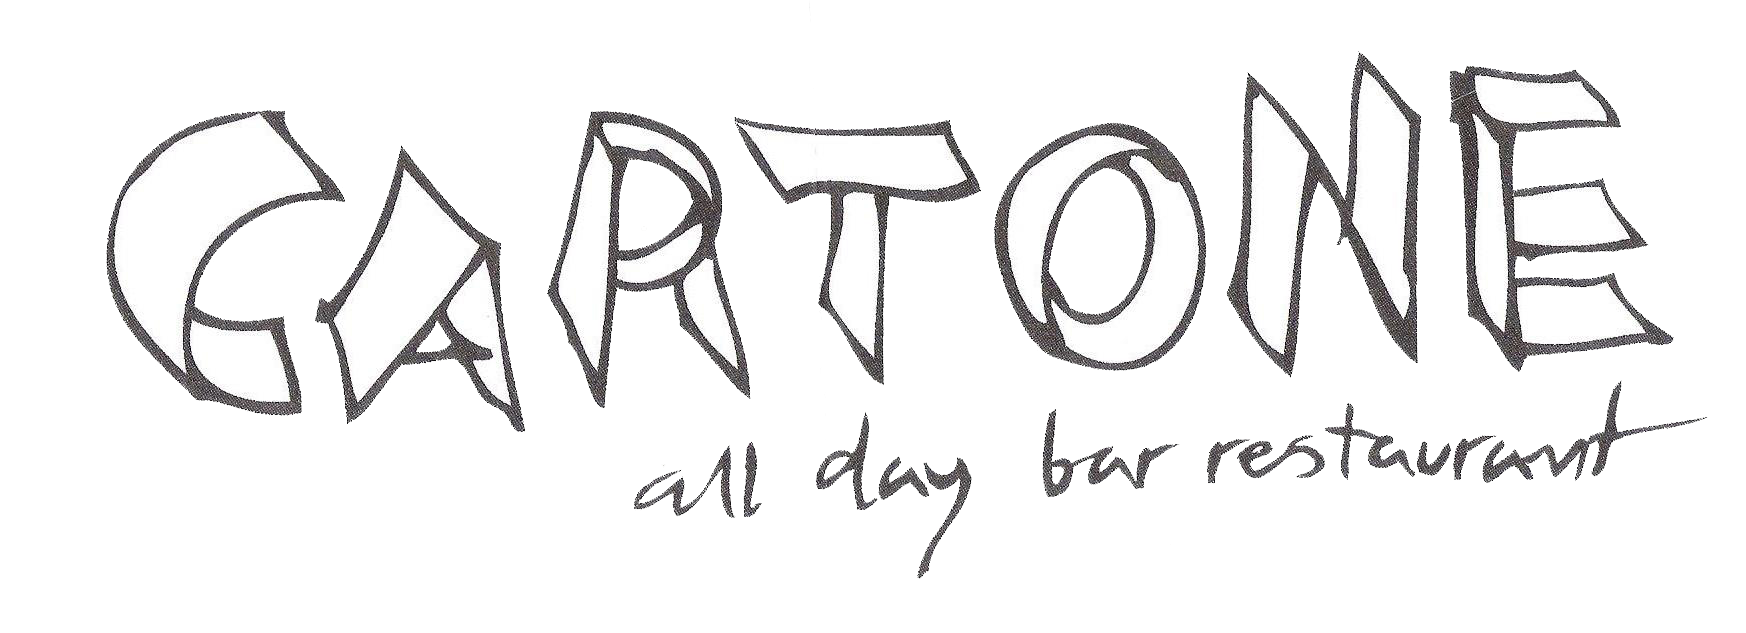 Cartone Gazi | All Day Bar Restaurant